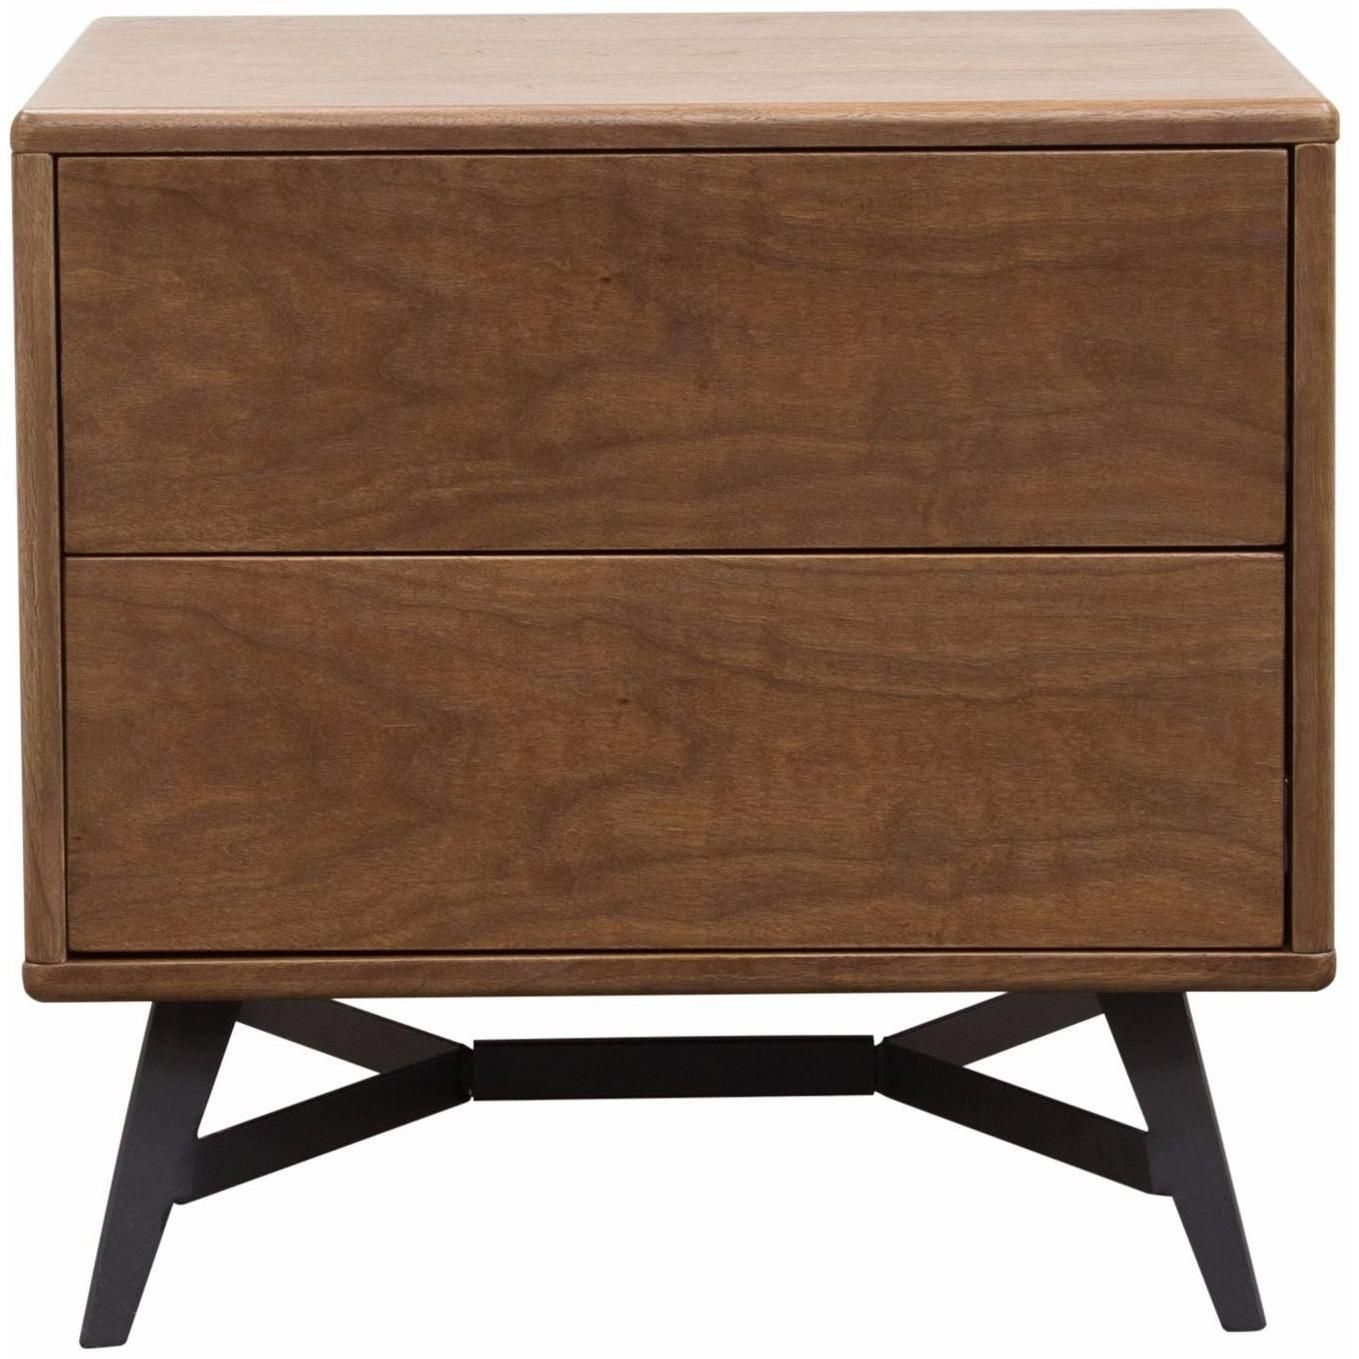 tempo end table with drawer storage walnut case and black powder tachuri geometric front accent brown opalhouse coated legs diamond sofa modern coffee tables toronto round wood